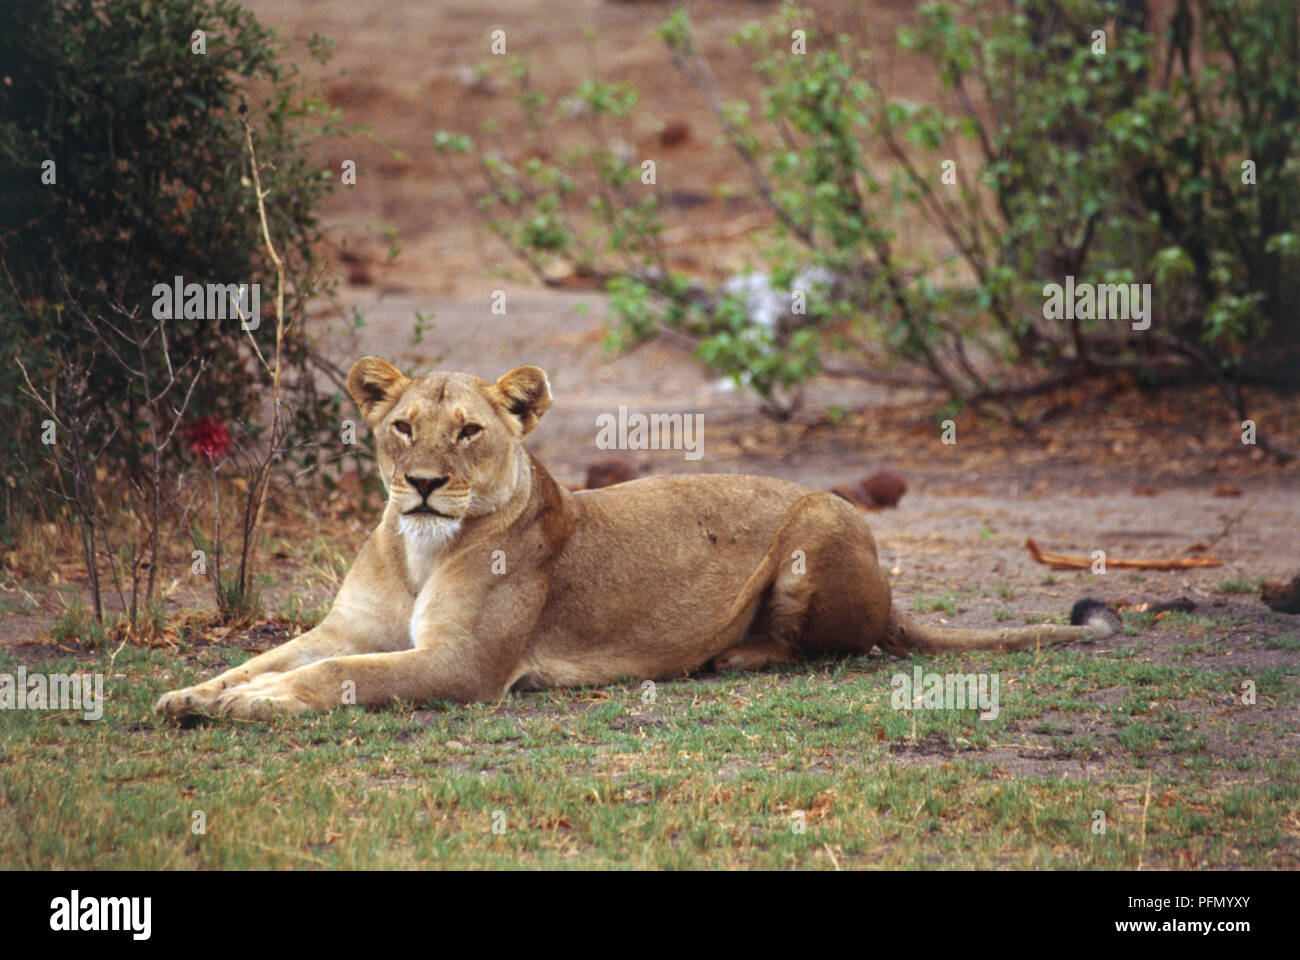 Lioness, Panthera leo, lying down on grass, front legs outstretched before her, head raised, white hairs on chin, looking forward, angled side view, scrubland in background. - Stock Image